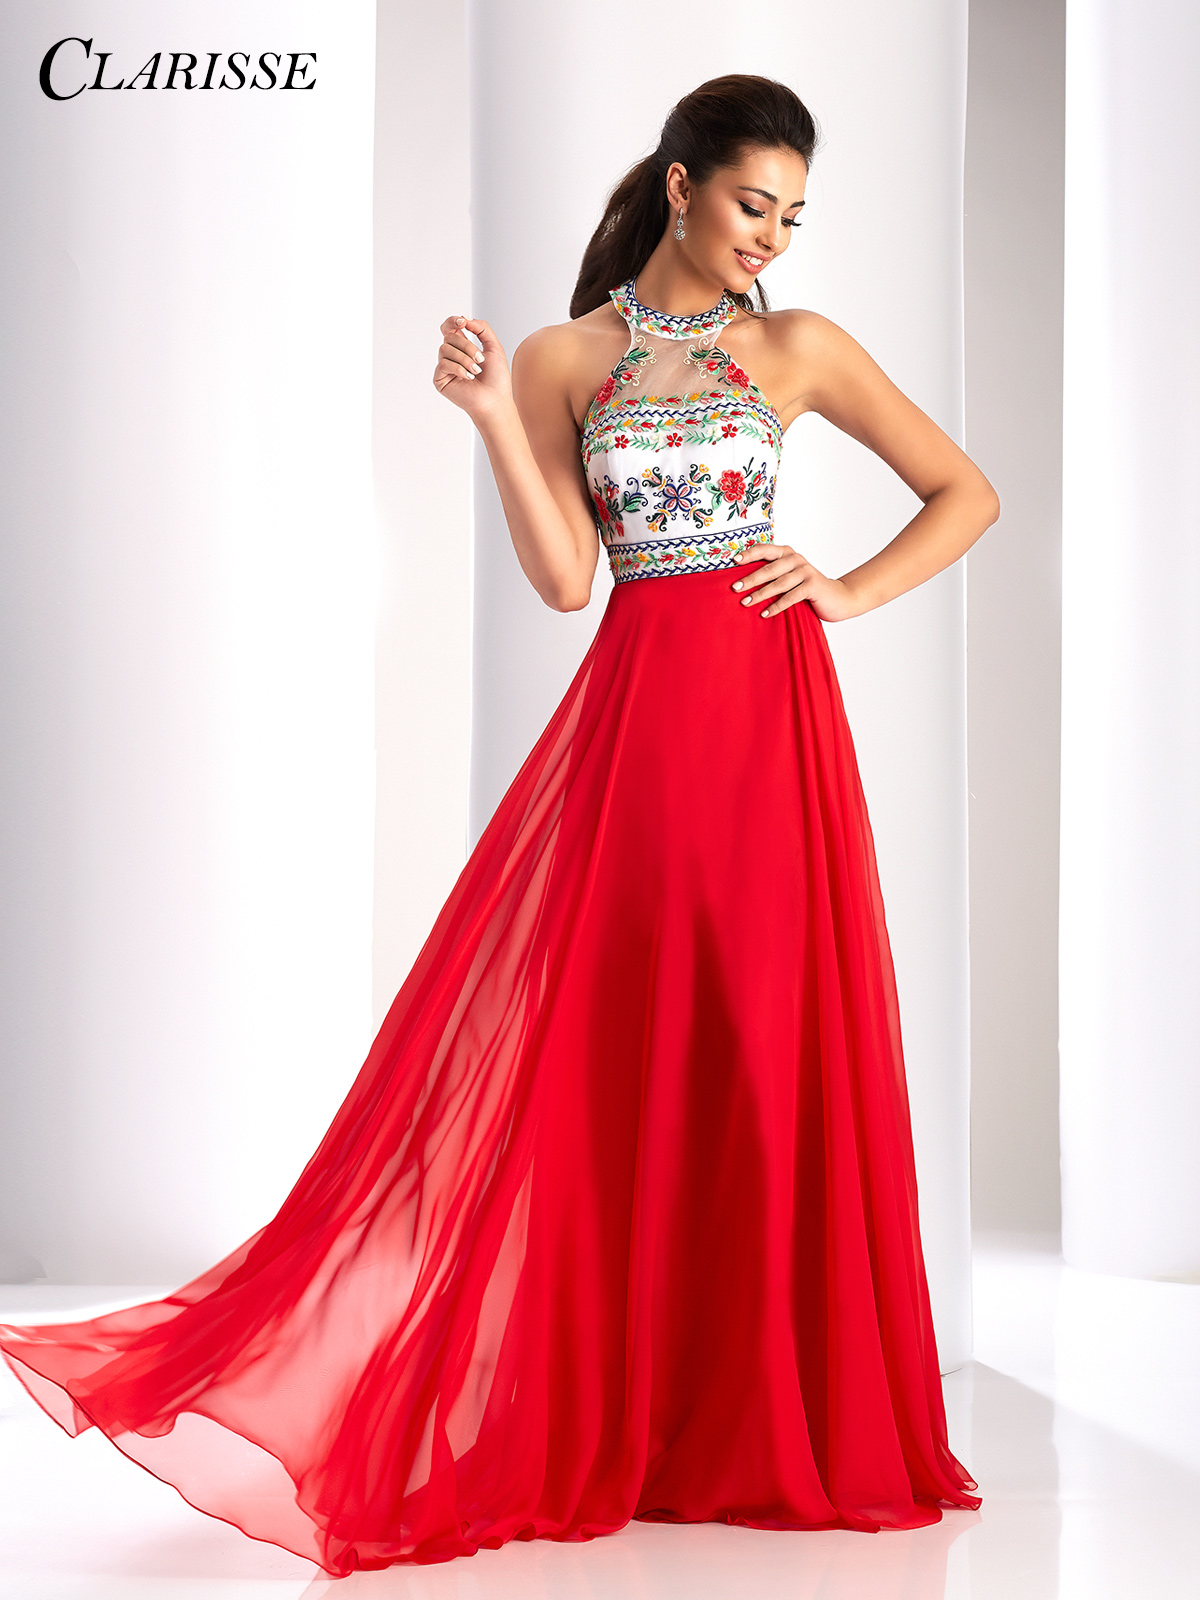 The Best Prom Dresses